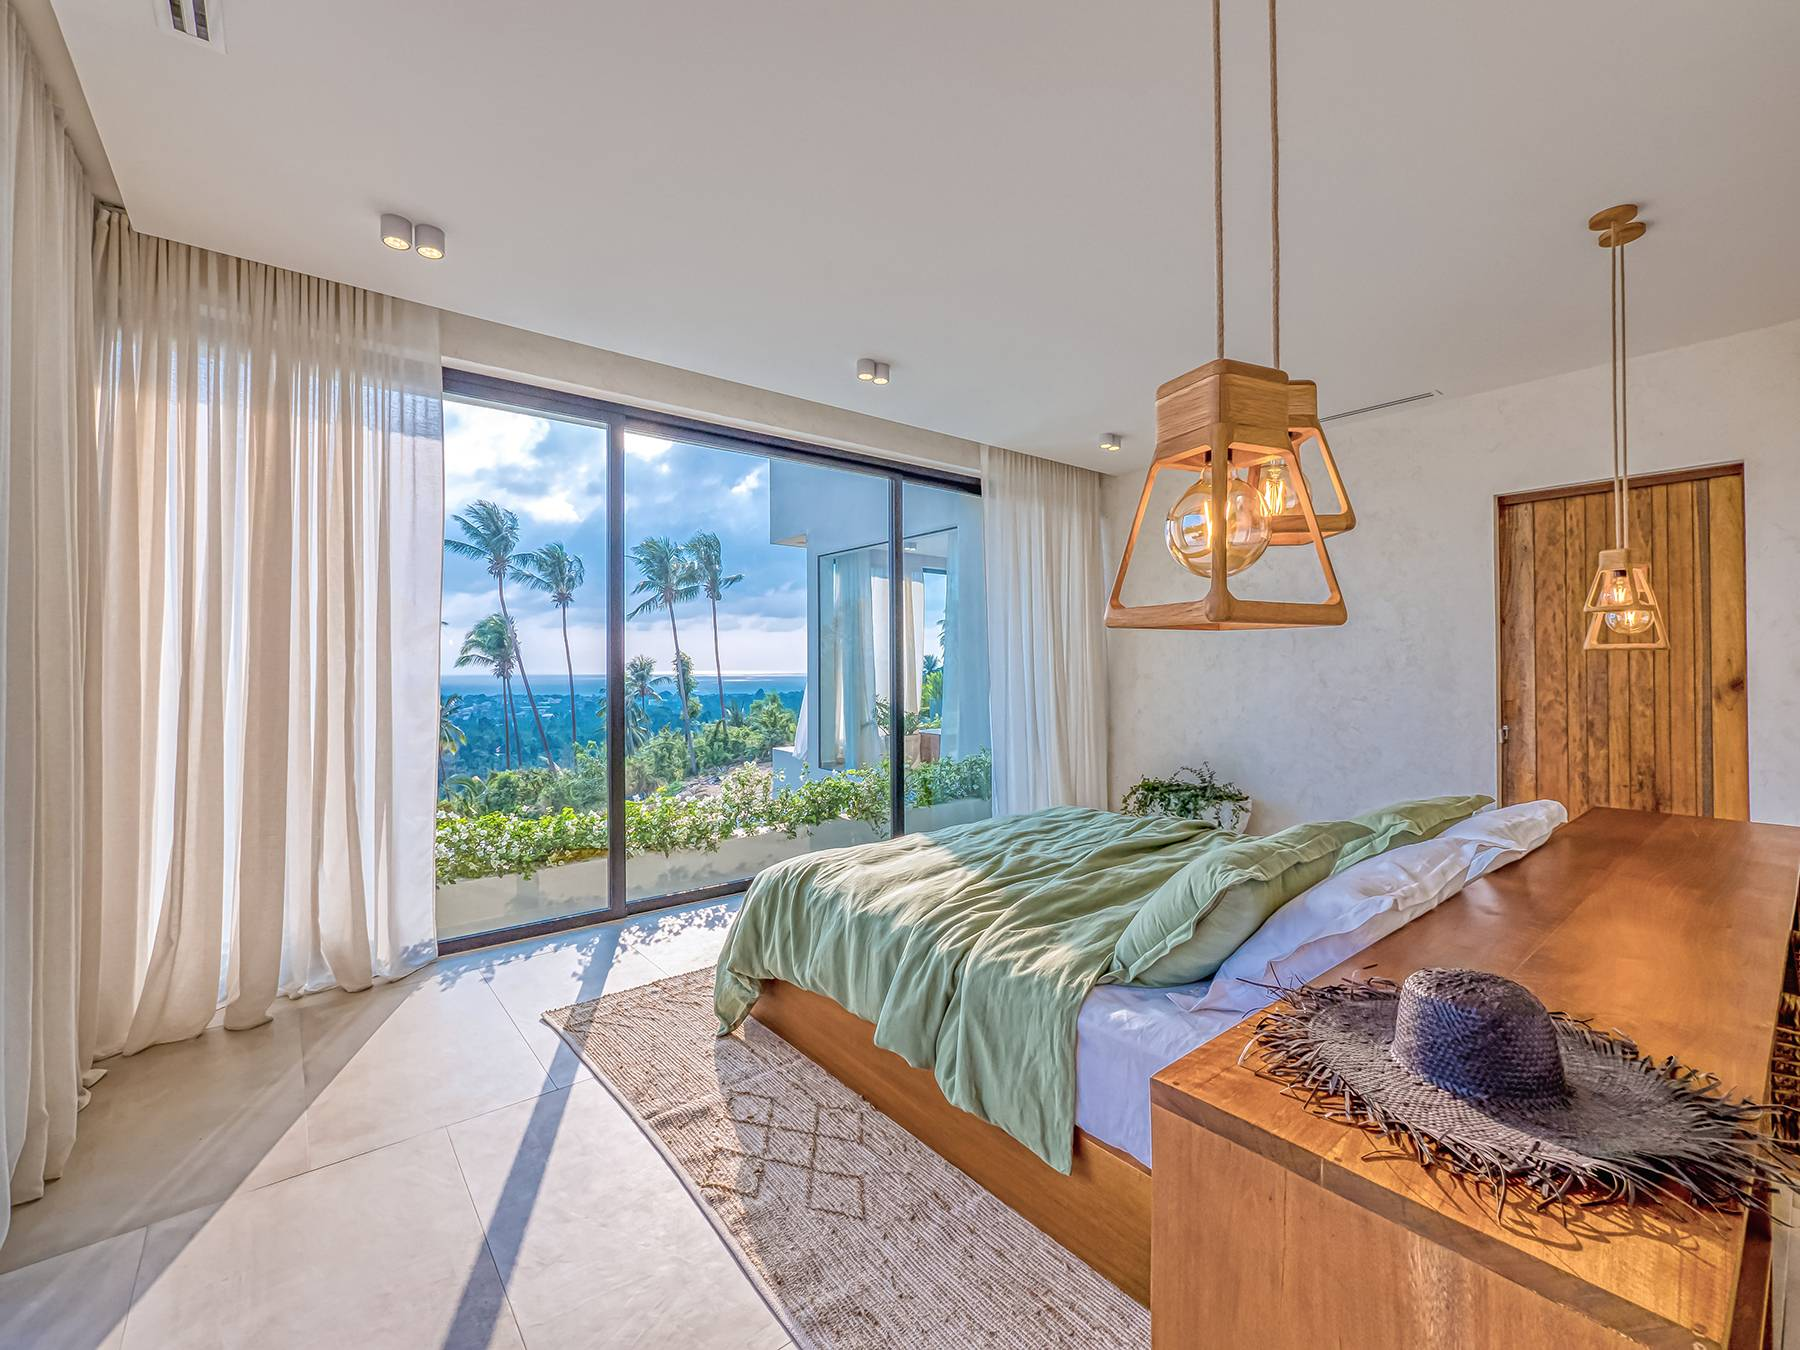 Istani Villas - Eco Style sea view villas for sale in Koh Samui: Istani Villas - Eco Style sea view villas for sale in Koh Samui